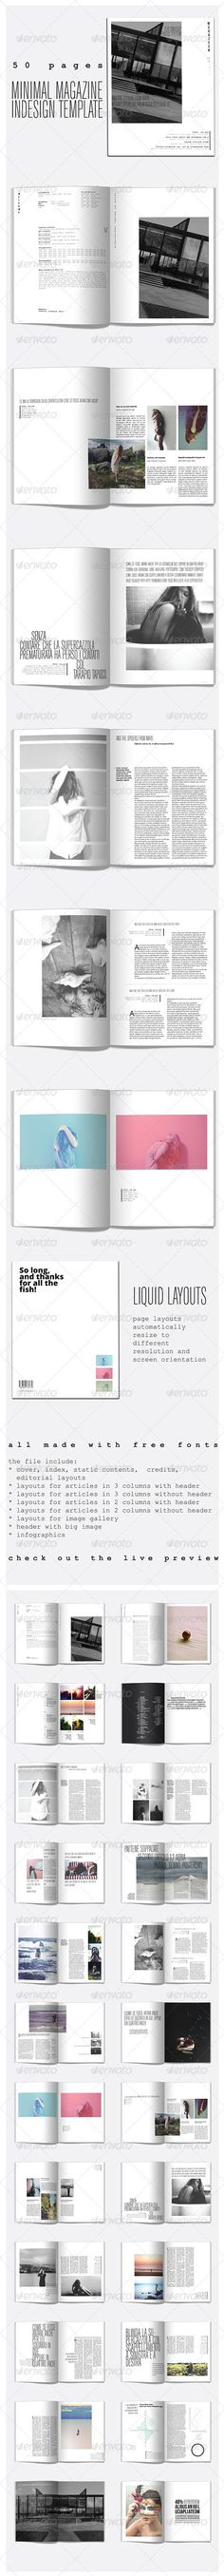 50 Pages Minimal Magazine - Magazines Print Templates